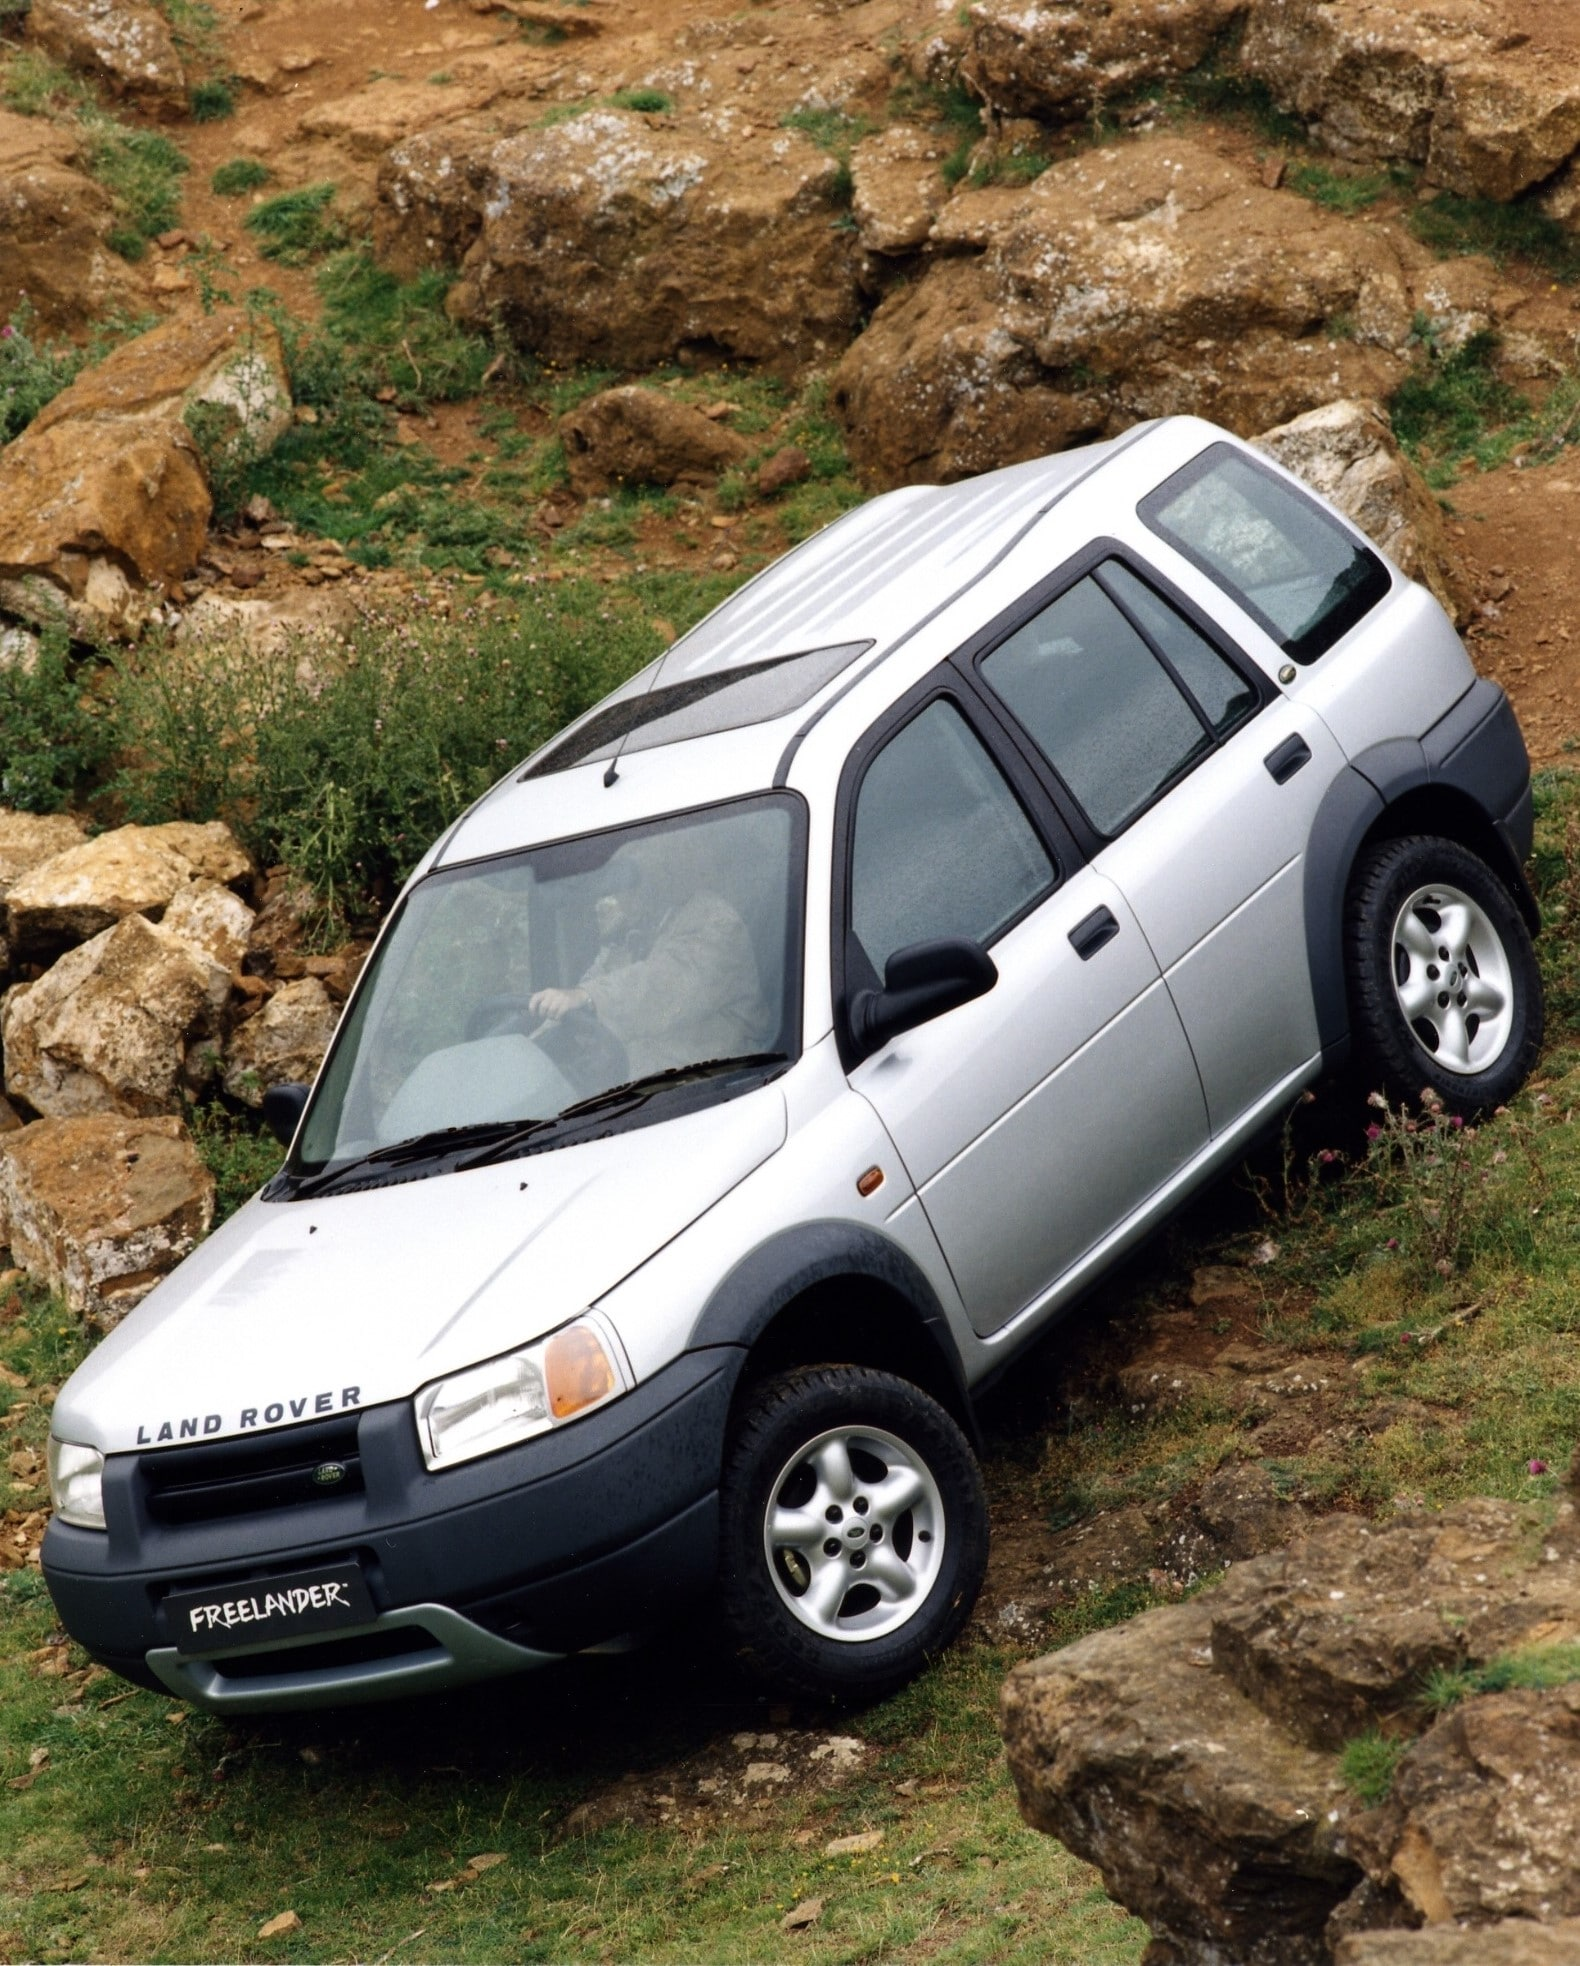 Land Rover Freelander, Land Rover, Freelander, Defender, Land Rover Defender, Land Rover Discovery, Discovery, 4x4, off road, winching, classic car, retro car, car sales, bargain car, cheap car, autotrader, ebay motors, car, cars, motoring, automotive